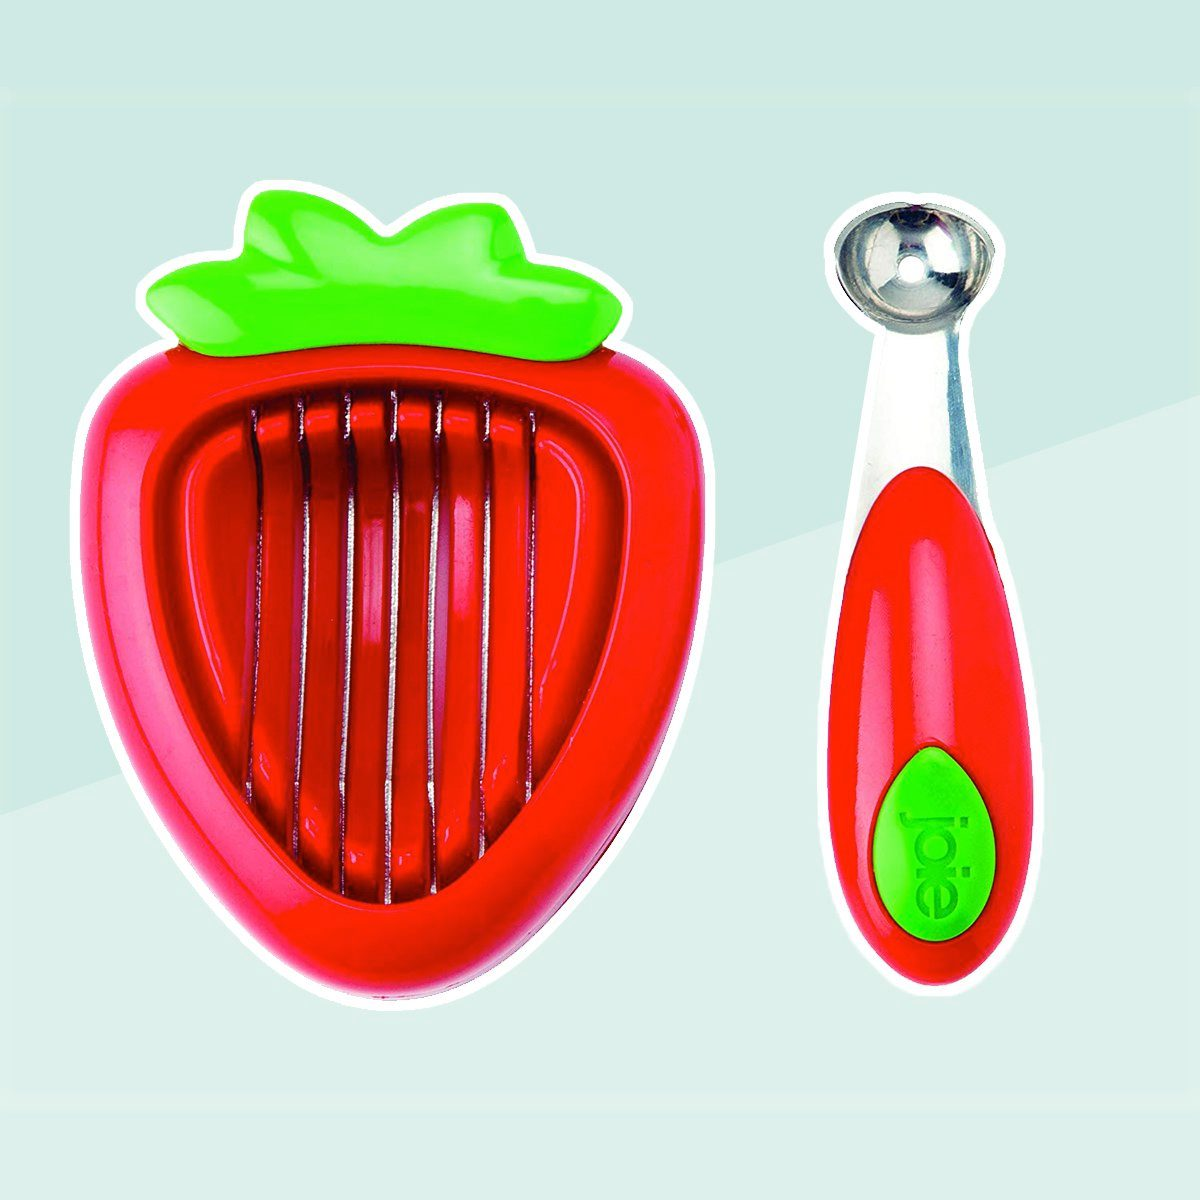 MSC International 87312 Joie Strawberry Hull and Slice, BPA free, FDA approved 2-Piece Set Red